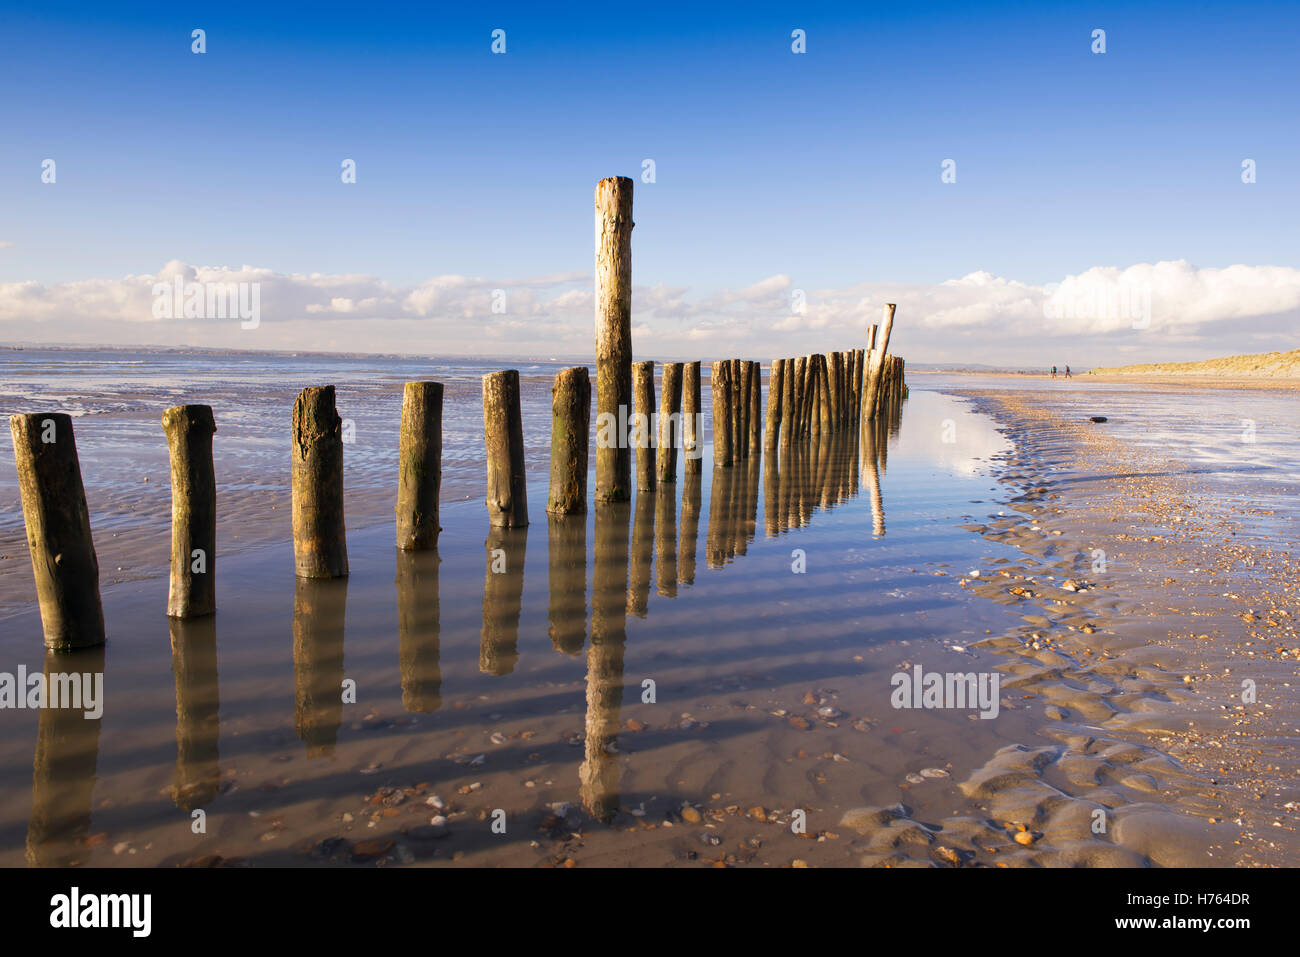 Wooden posts in the sands at West Wittering beach on a bright winter day - Stock Image